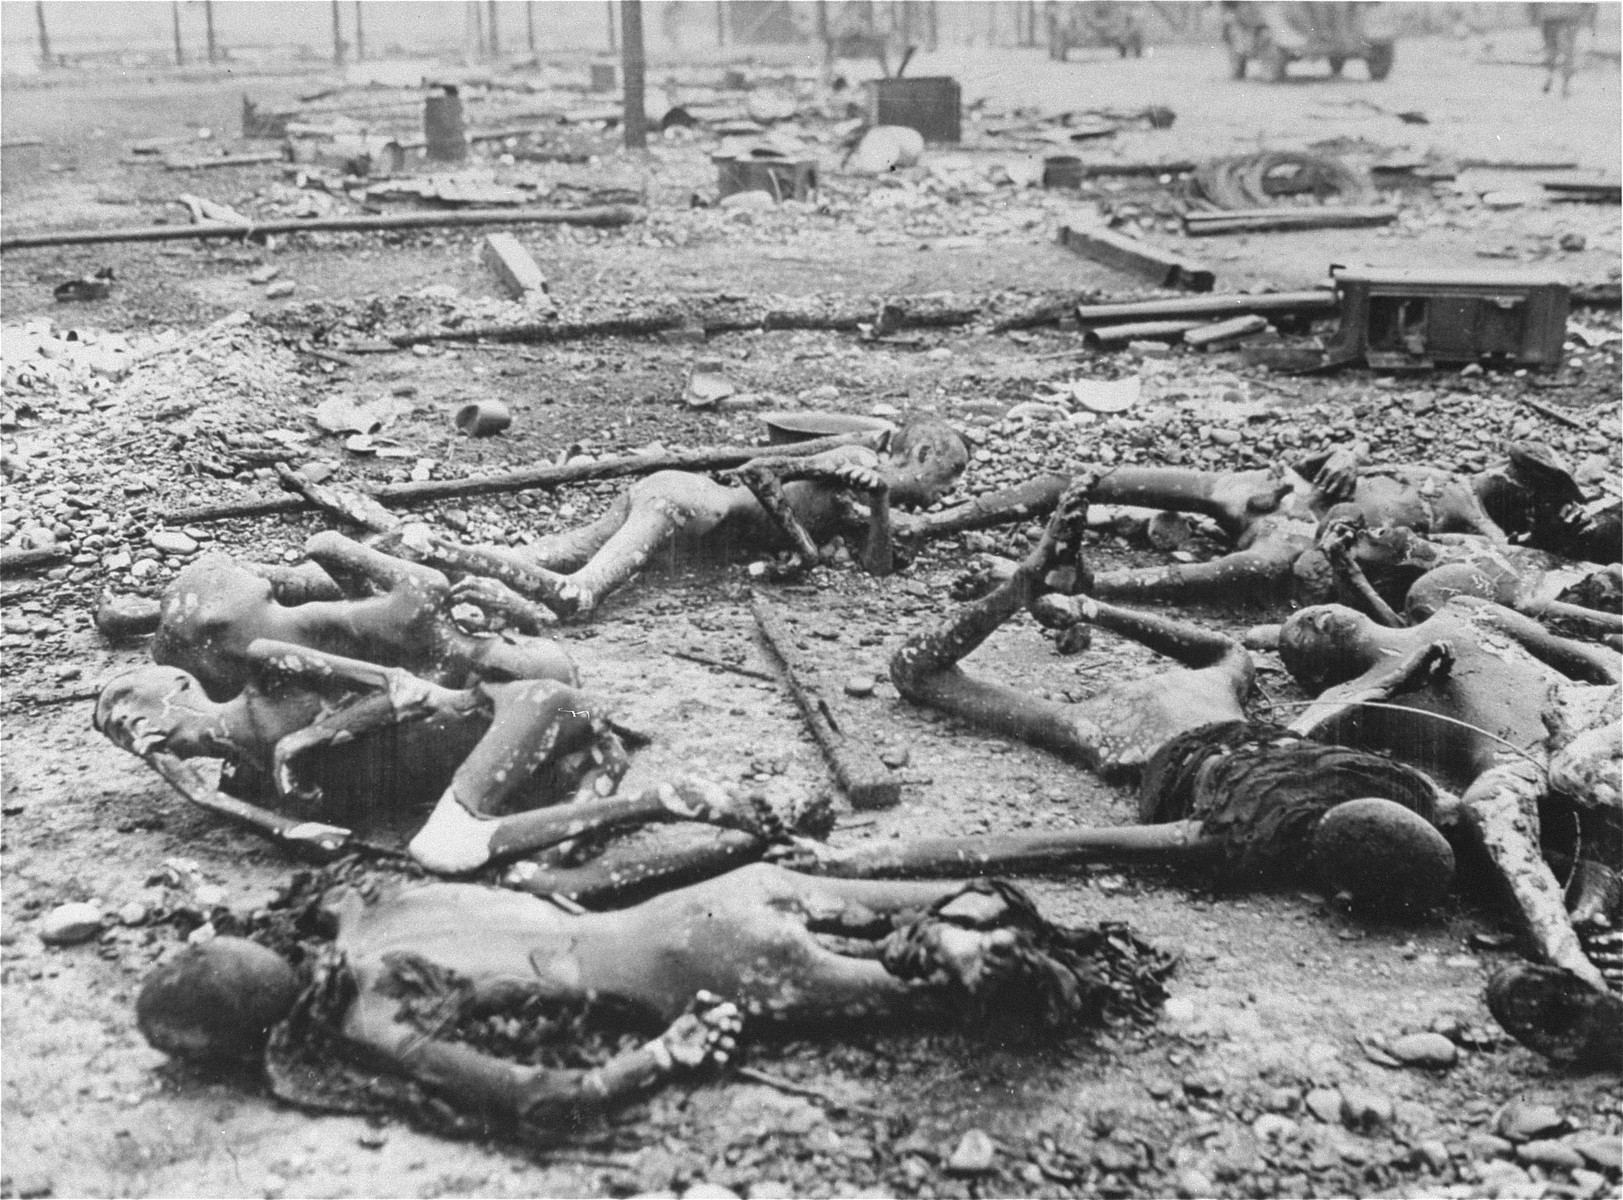 "The charred corpses of prisoners lie amongst trash and rubble in the Kaufering IV concentration camp.  Original caption reads, ""The Landsberg Atrocity: the charred corpses of Jewish prisoners found lying in the ashes of their prison hut set afire by retreating Nazi prison guards at Landsberg. These prisoners were apparently burned alive when they were locked in their wooden huts and told to stay there or be shot by the guards. Burned fragments of clothing cling to some of the emaciated bodies while others are naked."""